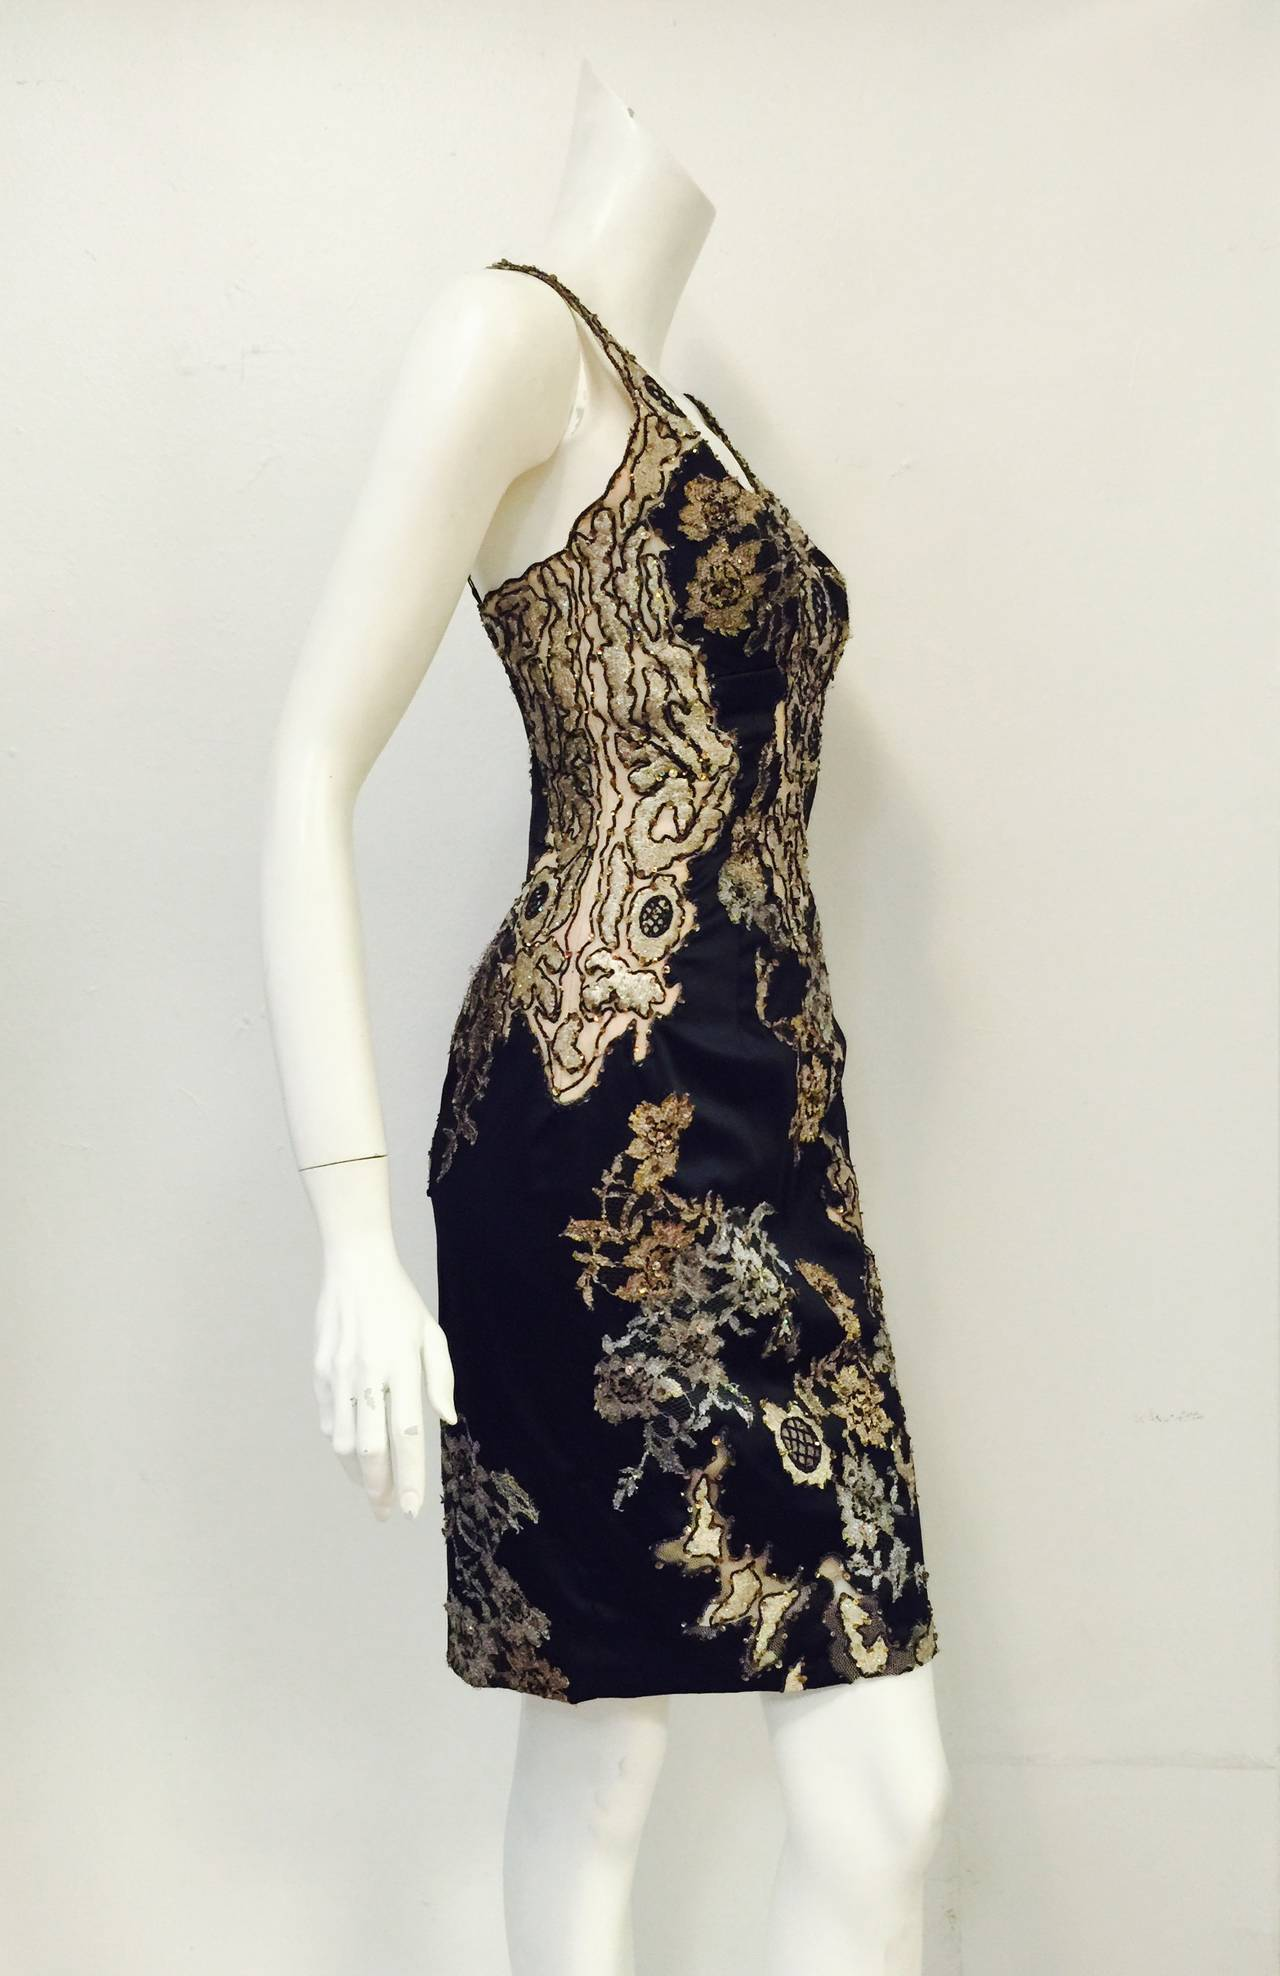 New Mandalay Midnight Blue Neiman Marcus Beaded Cocktail Dress In New Never_worn Condition For Sale In Palm Beach, FL